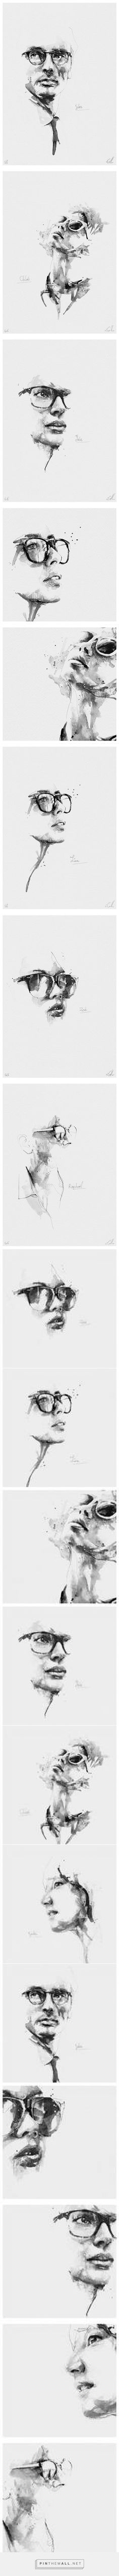 Pencil Portrait Mastery - Spontaneous and Realistic Black and White Pencil Portraits – Fubiz Media - created via pinthemall.net - Discover The Secrets Of Drawing Realistic Pencil Portraits